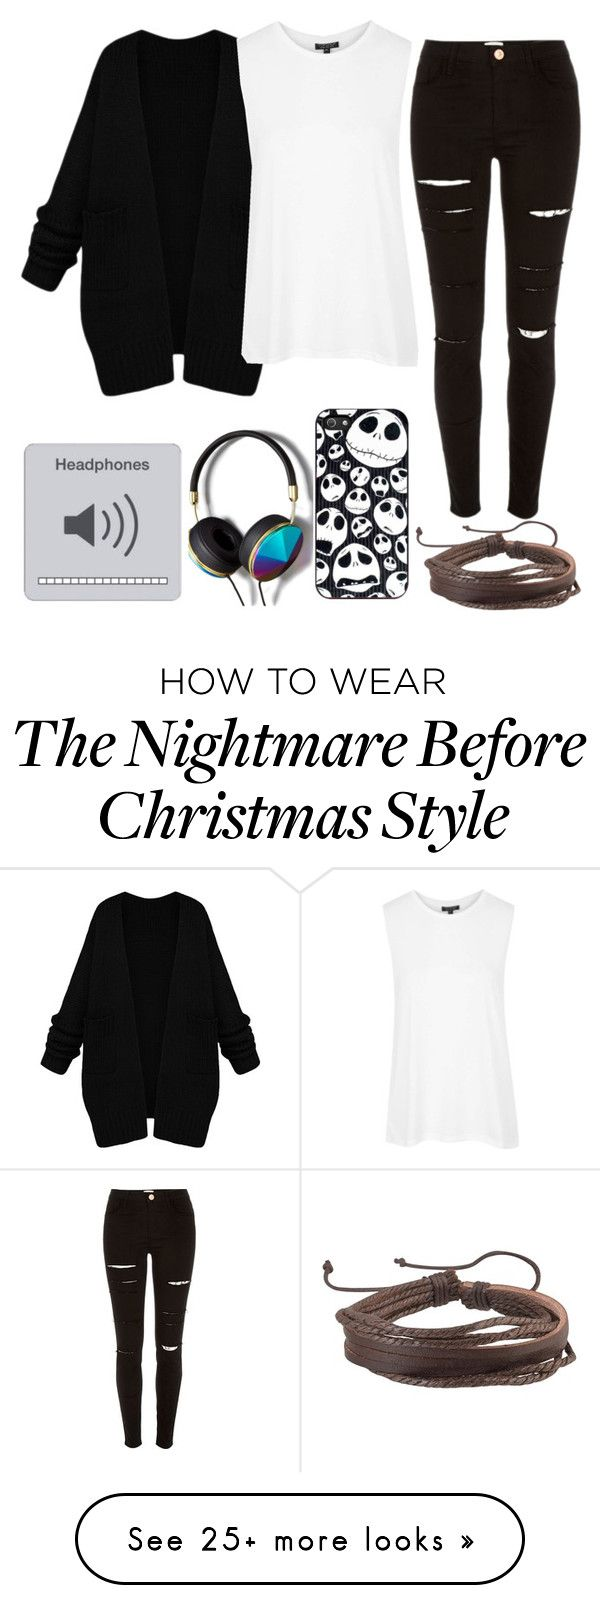 """""""SHOUT IT WITH ME!!"""" by buesosanchez on Polyvore featuring Abercrombie & Fitch, River Island, Zodaca, Topshop, women's clothing, women's fashion, women, female, woman and misses"""